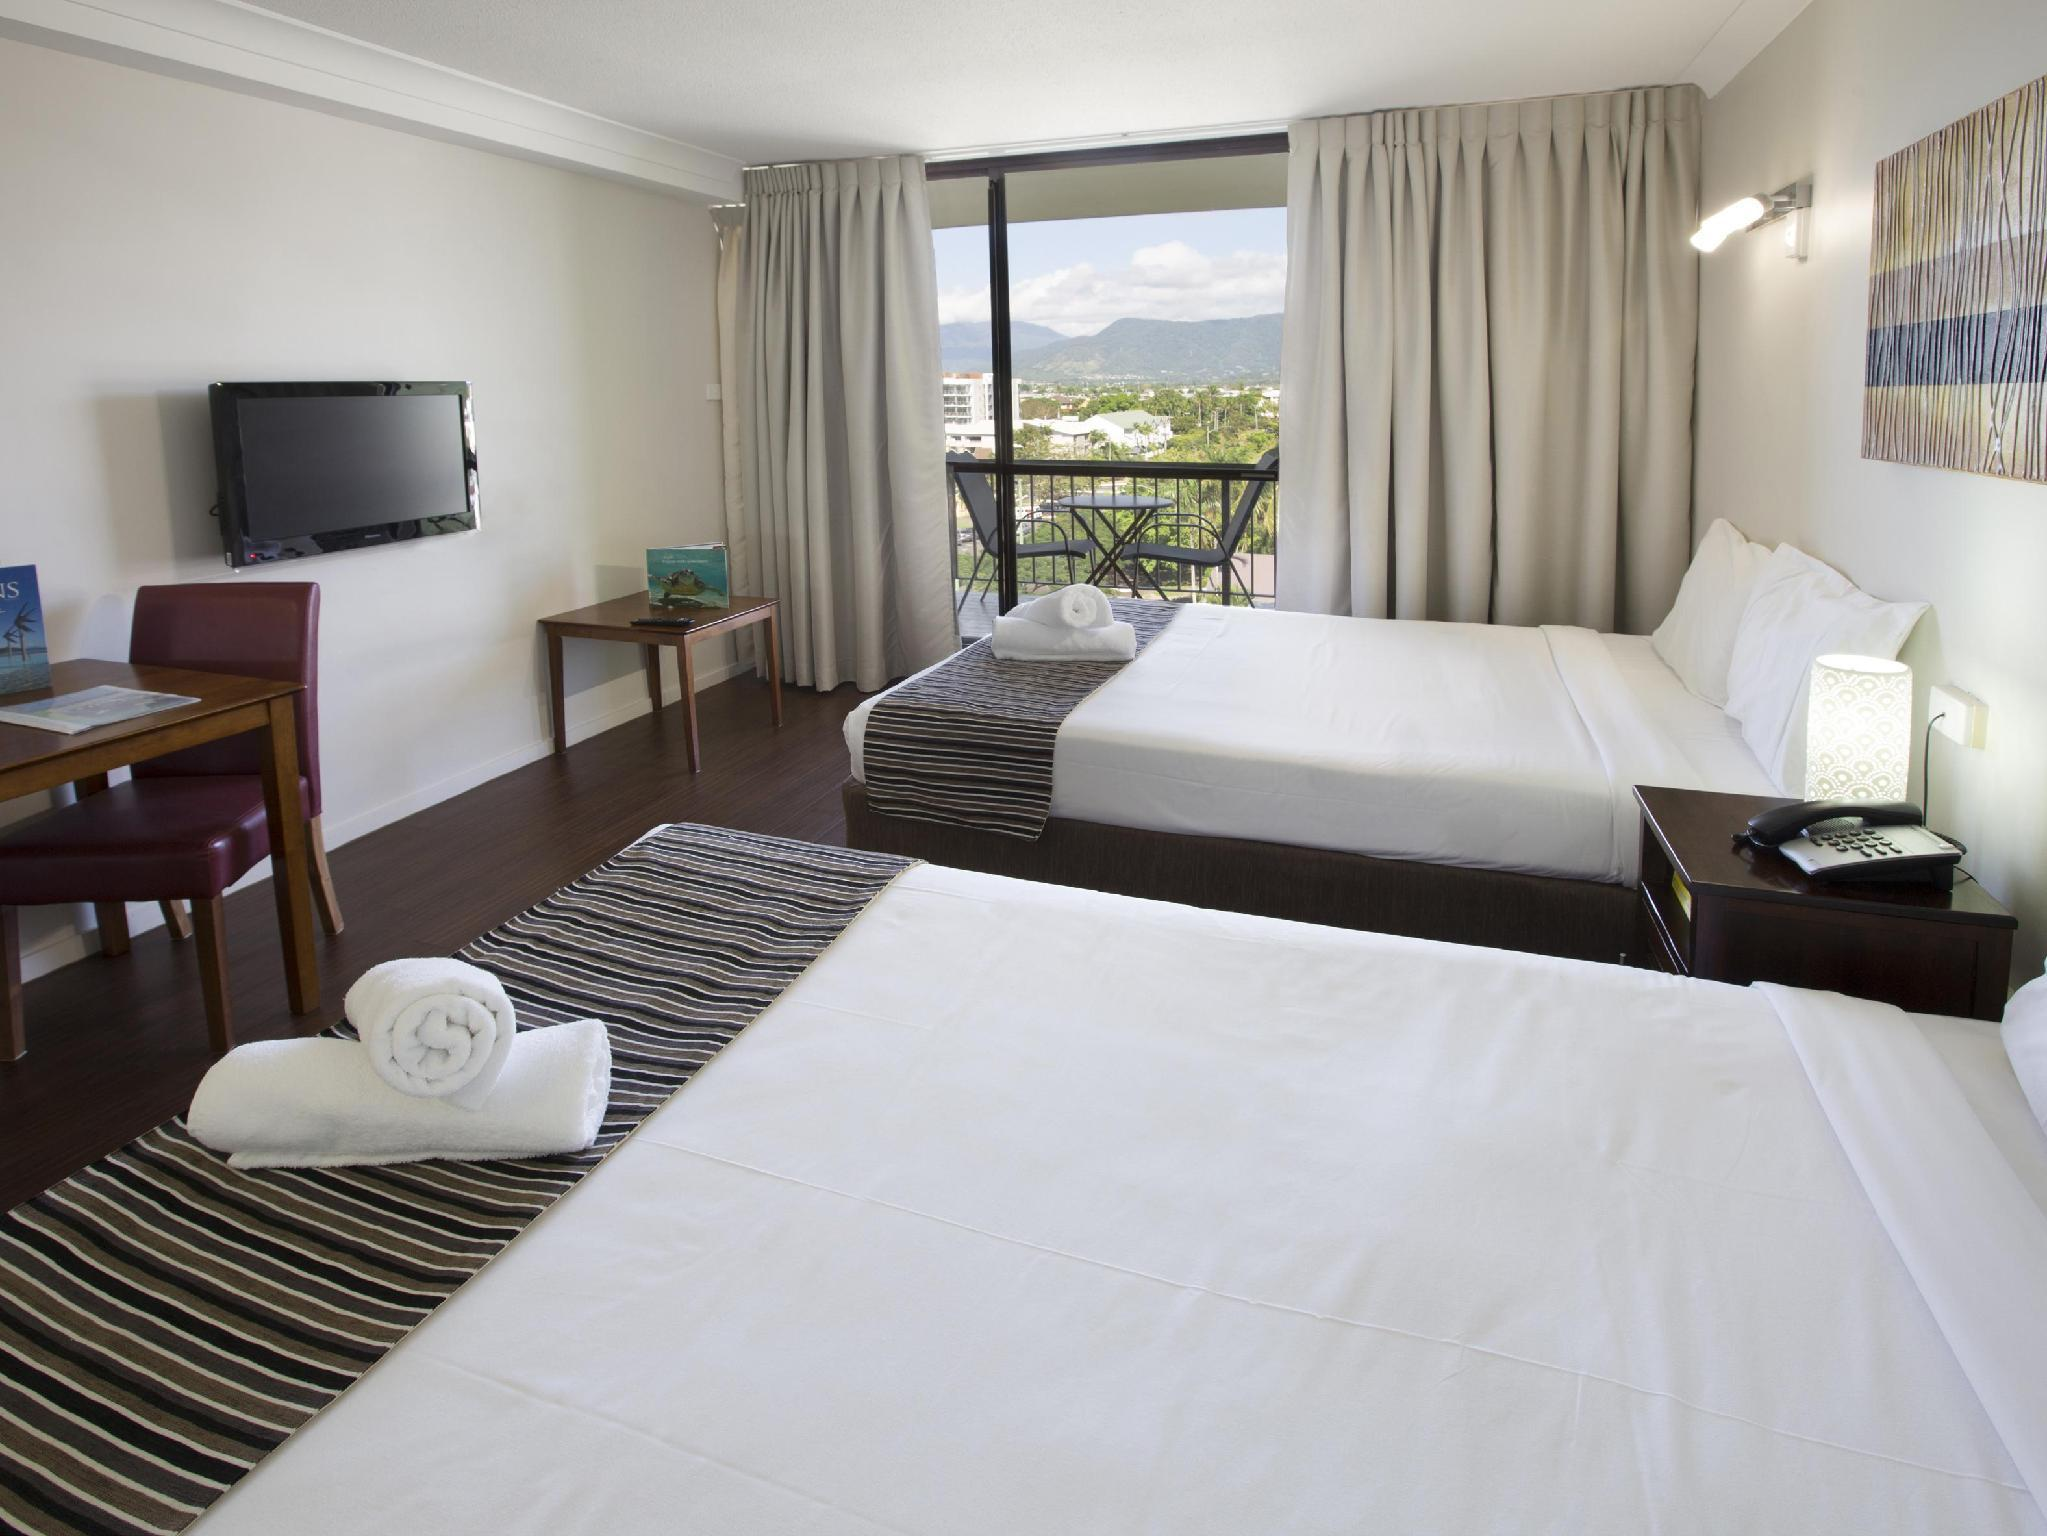 Best Price on Cairns Plaza Hotel in Cairns + Reviews